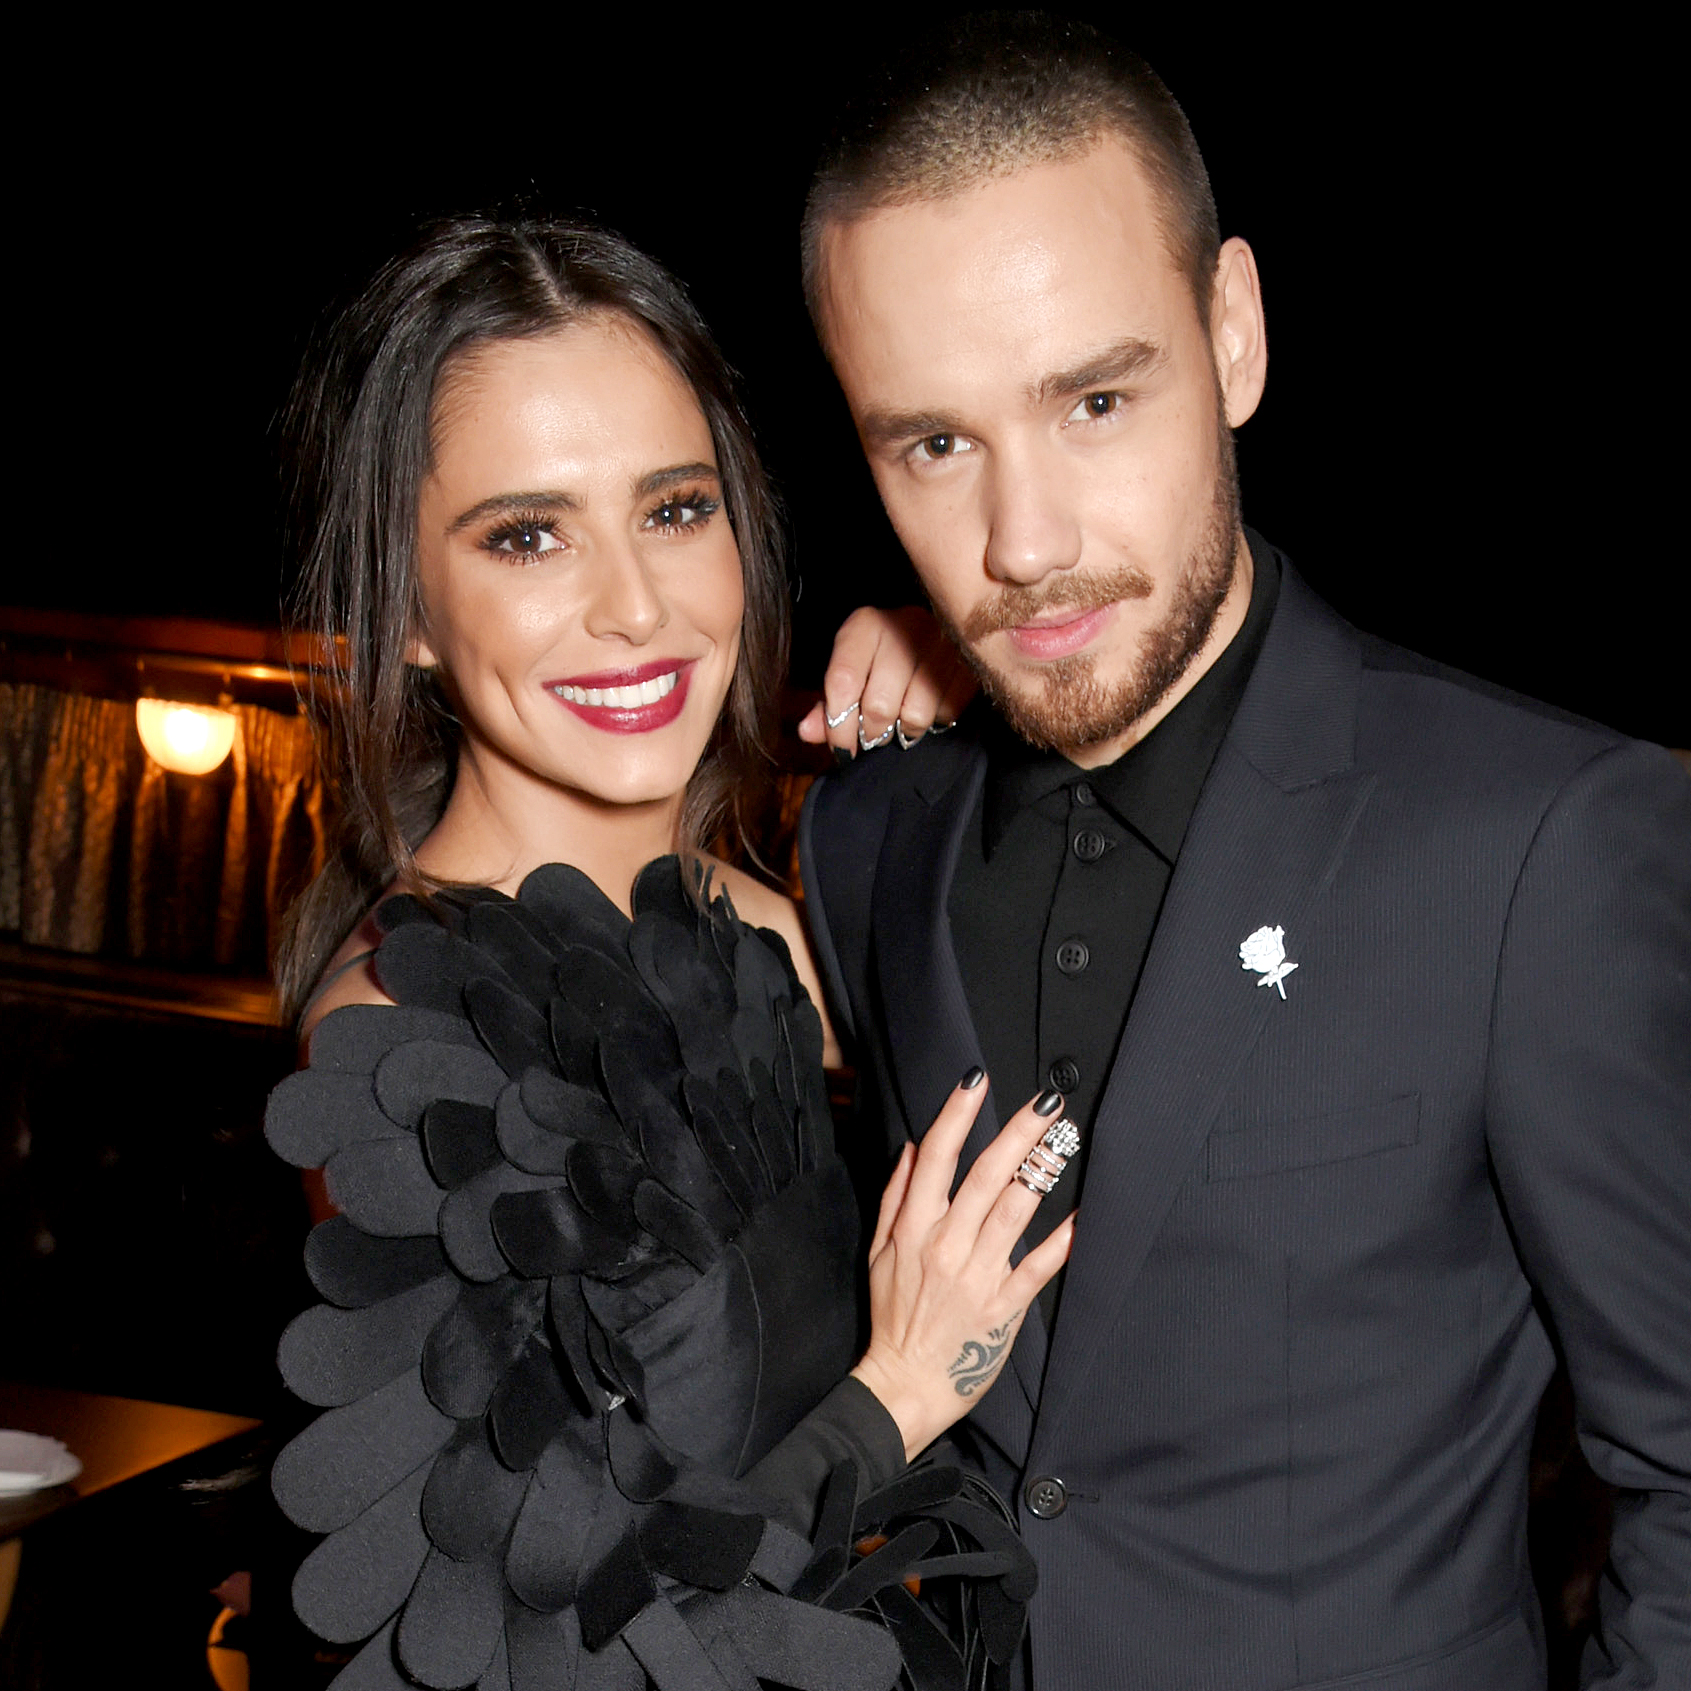 """Bear-Grey-Payne-Liam-Payne-Cheryl-Cole - """"He leapt out of his mother and caught a salmon and immediately started fighting with another bear,"""" Payne joked when asked about his and Chery Cole 's son's middle name on the The Late Late Show With James Corden ."""